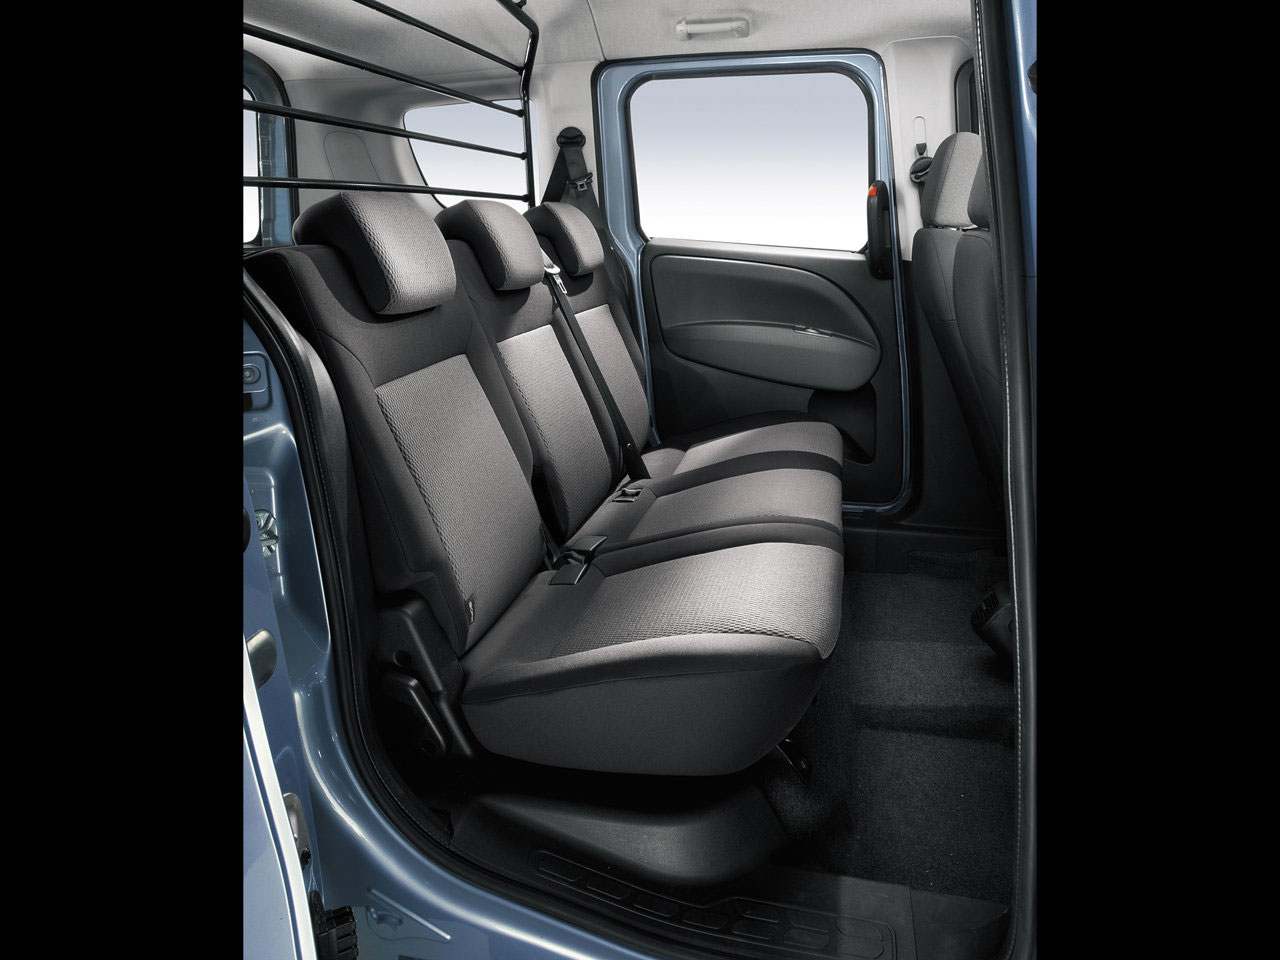 astounding-design-og-the-black-and-grey-leather-seats-ideas-with-grey-wall-ideas-as-the-fiat-doblo-2015-interior-ideas